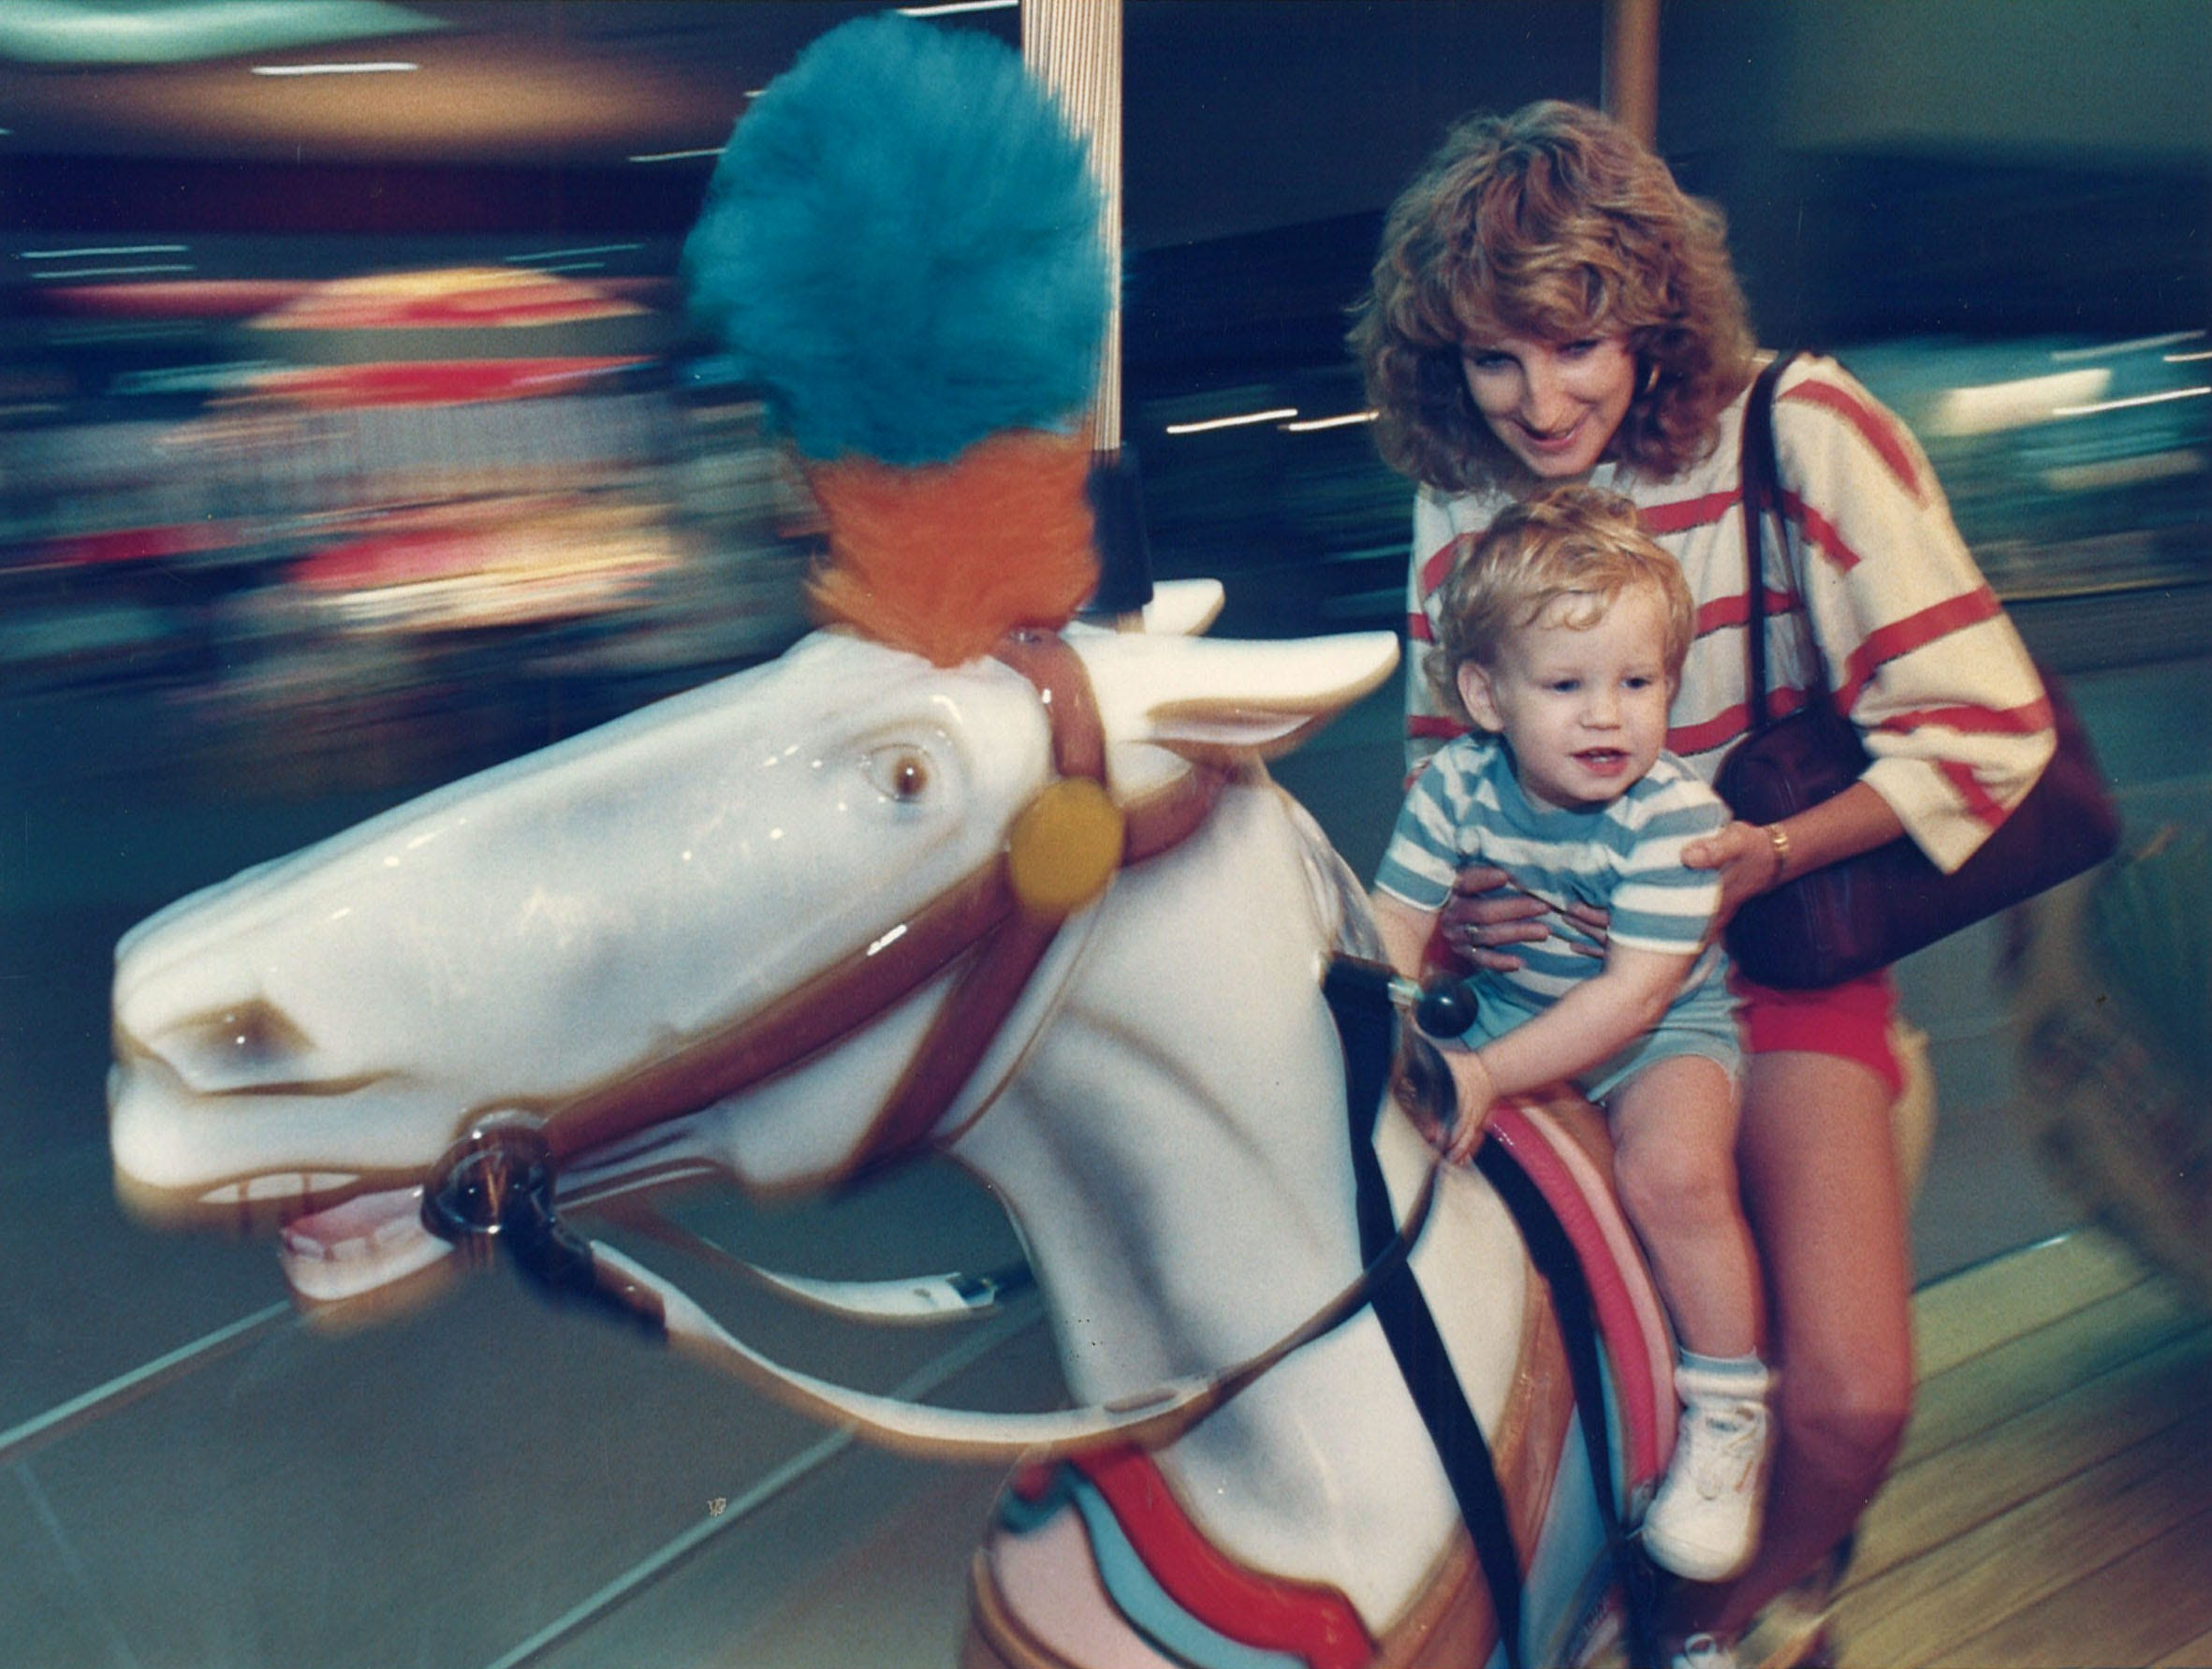 Mona Hatridge and 18-month-old son Reese spin around the carousel in Padres Staples mall on Oct. 26, 1988.